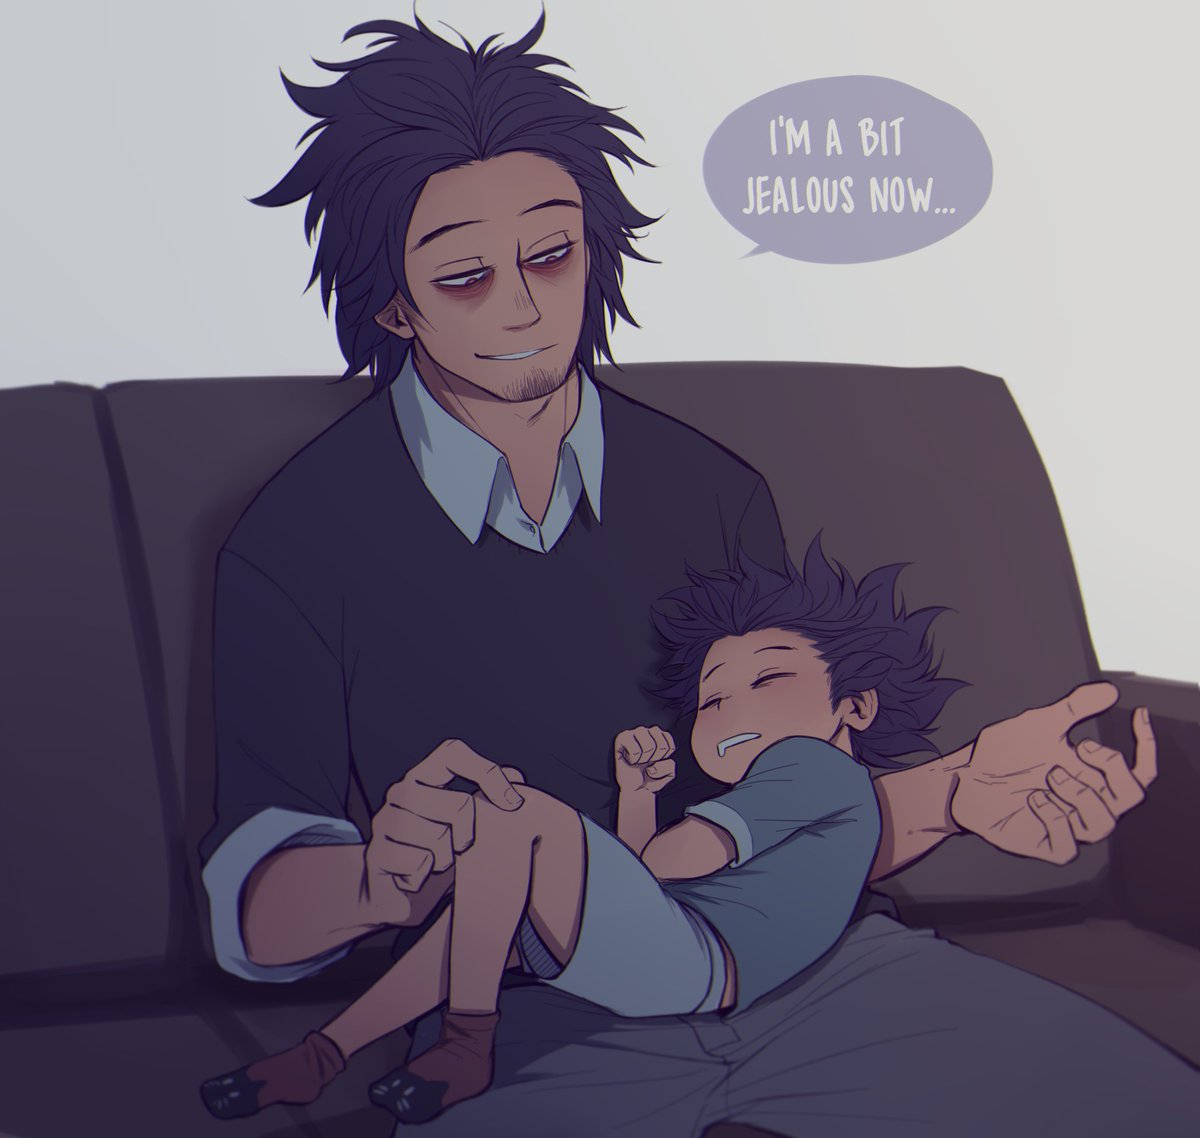 Hitoshi has a good dad ♡